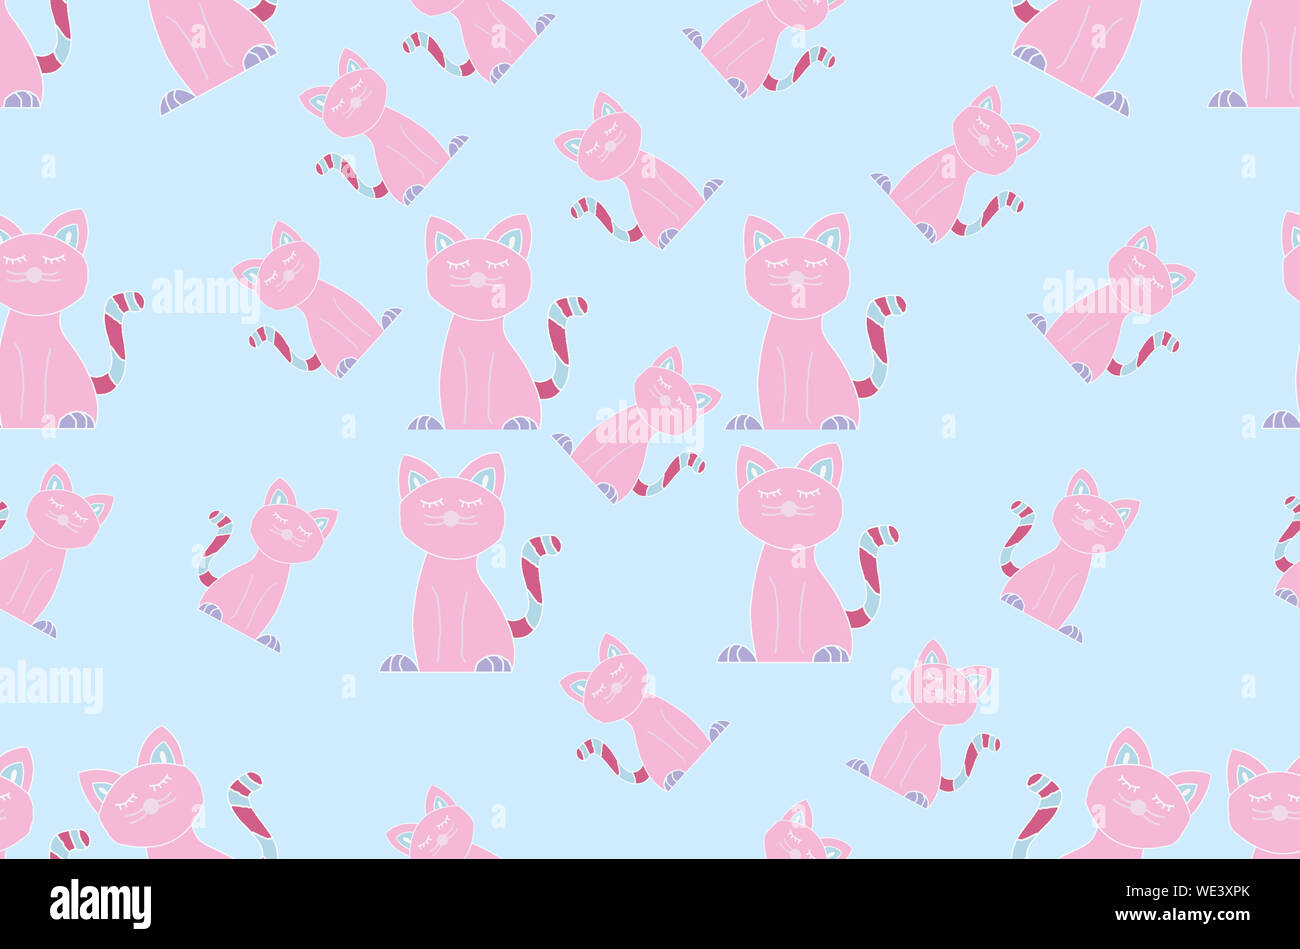 Pink Cat Seamless Pattern On Pastel Blue Background Simple And Cute Cat Illustration For Kids Wallpapers Or Wrapping Paper Adorable And Happy Design Stock Photo Alamy